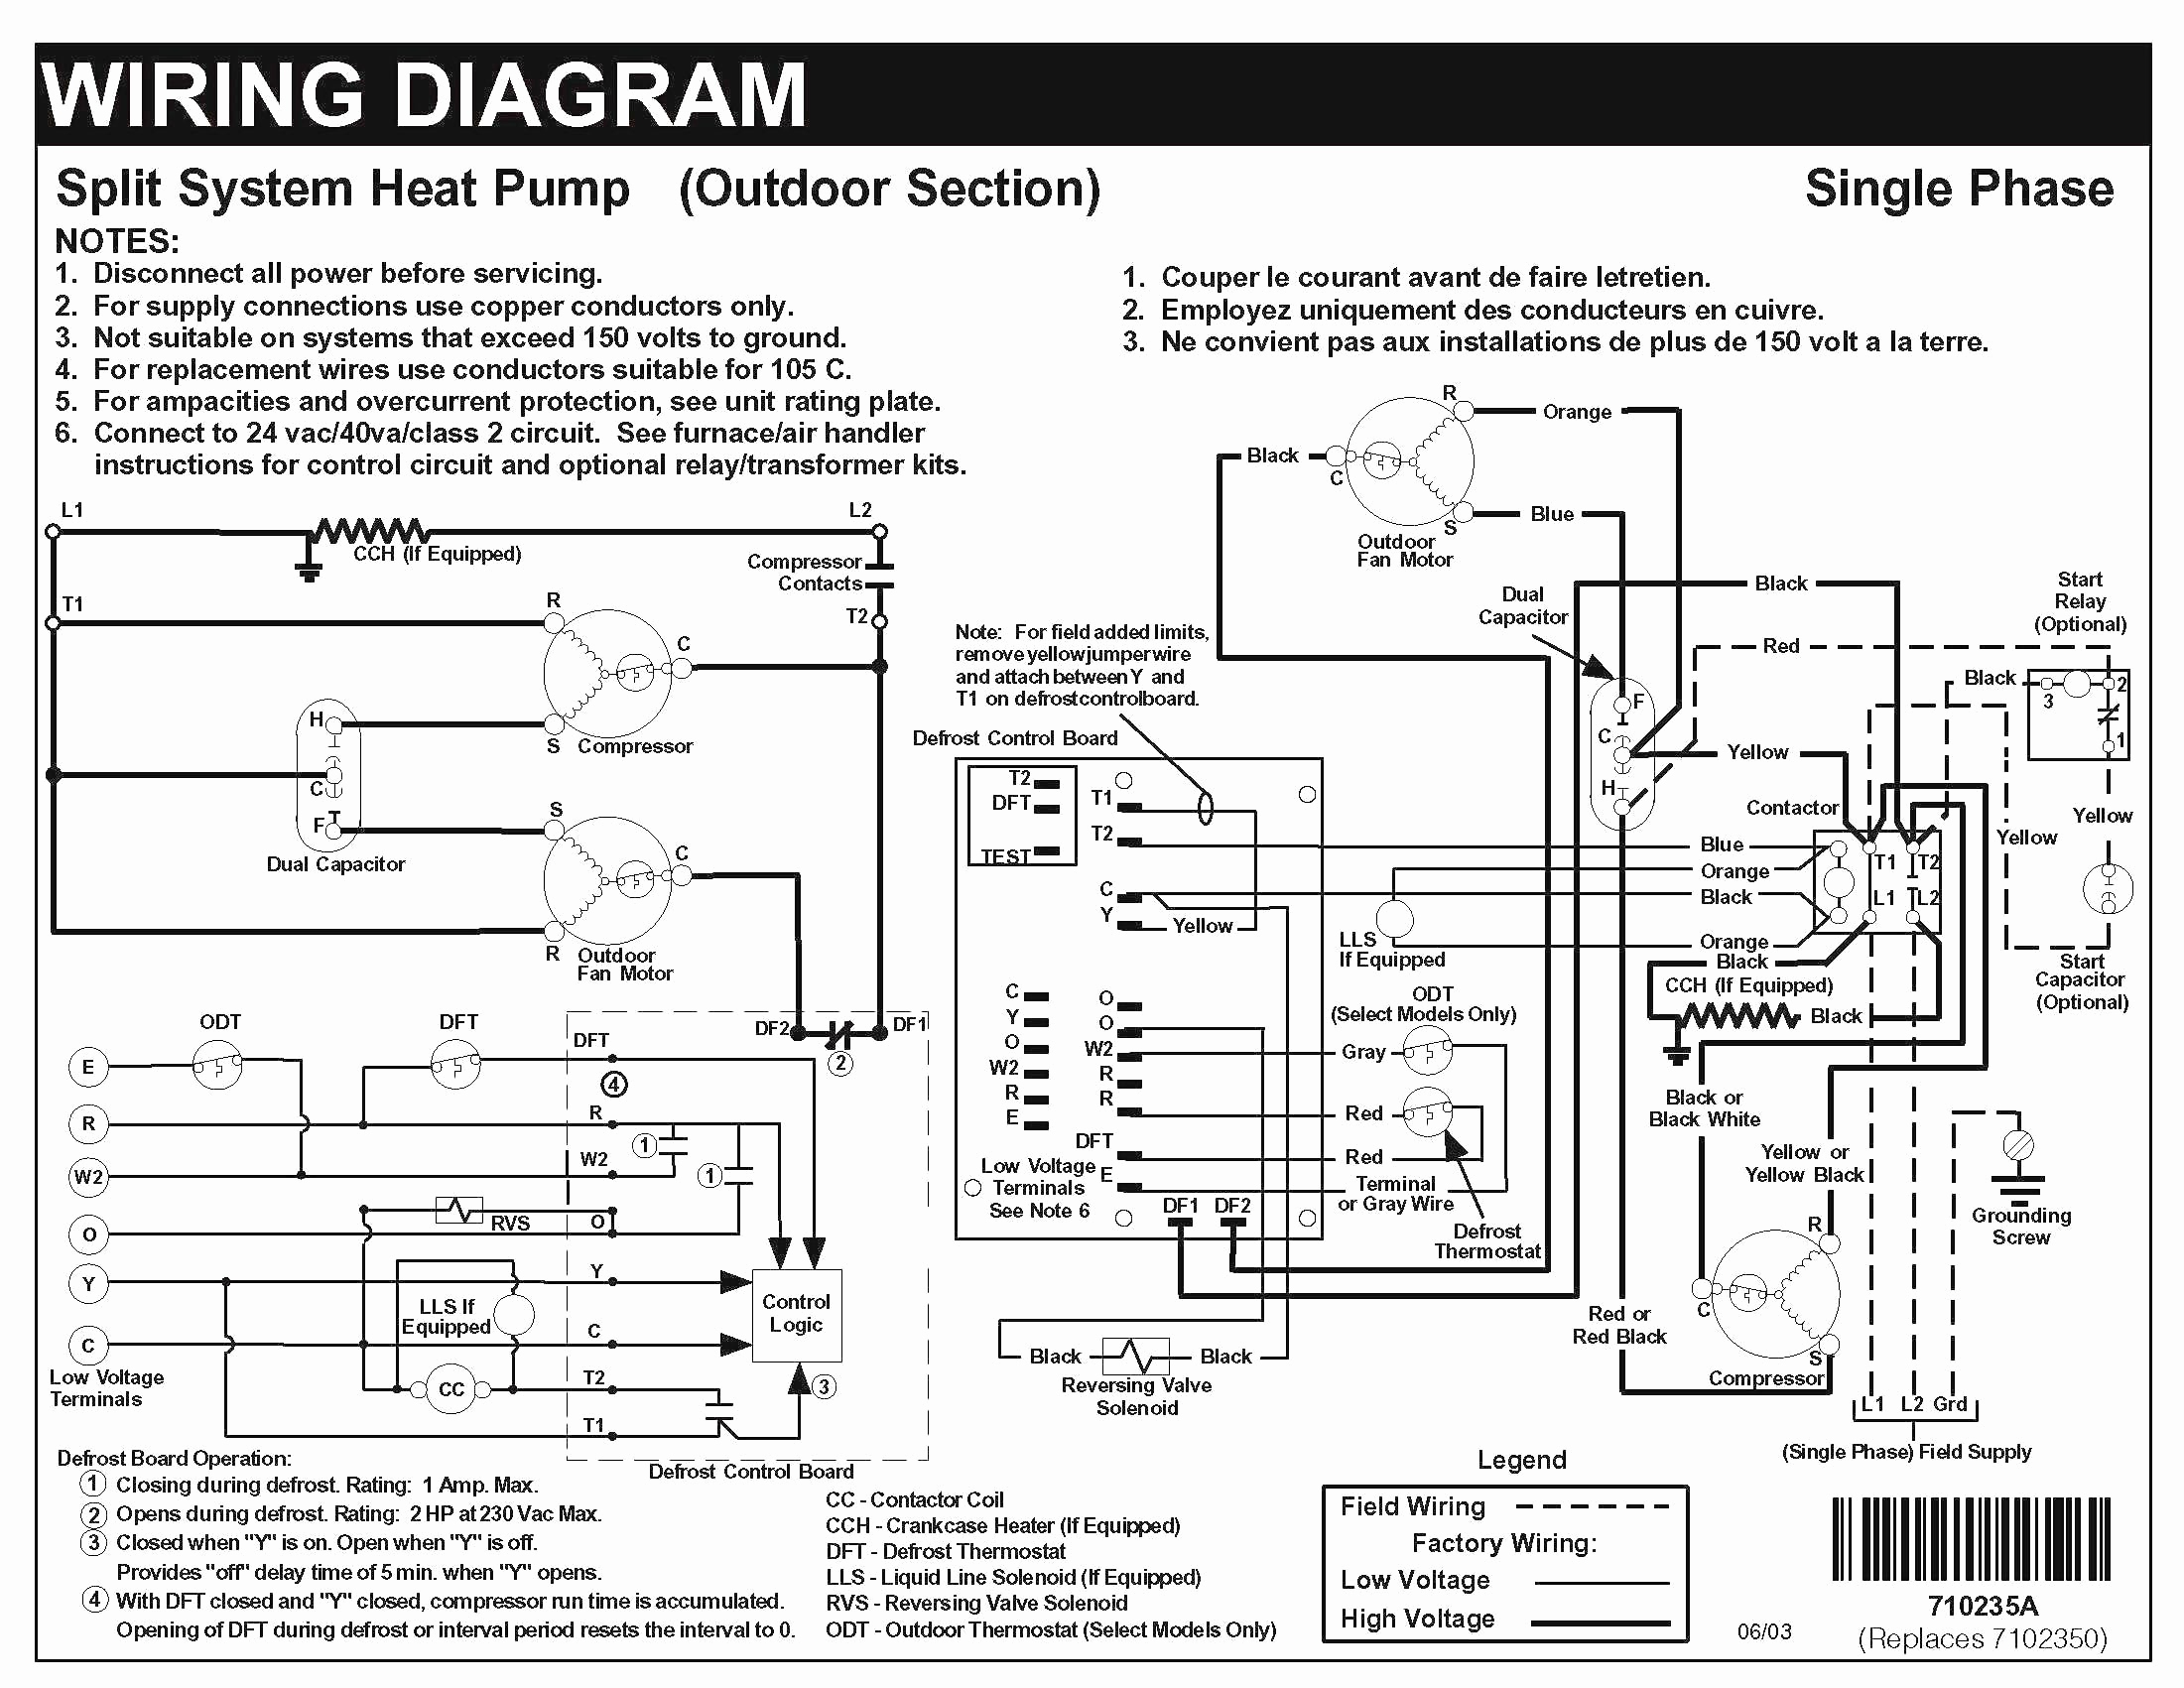 Goodman Heat Pump Wiring Diagram Fresh Goodman Package Unit Wiring - Goodman Package Unit Wiring Diagram